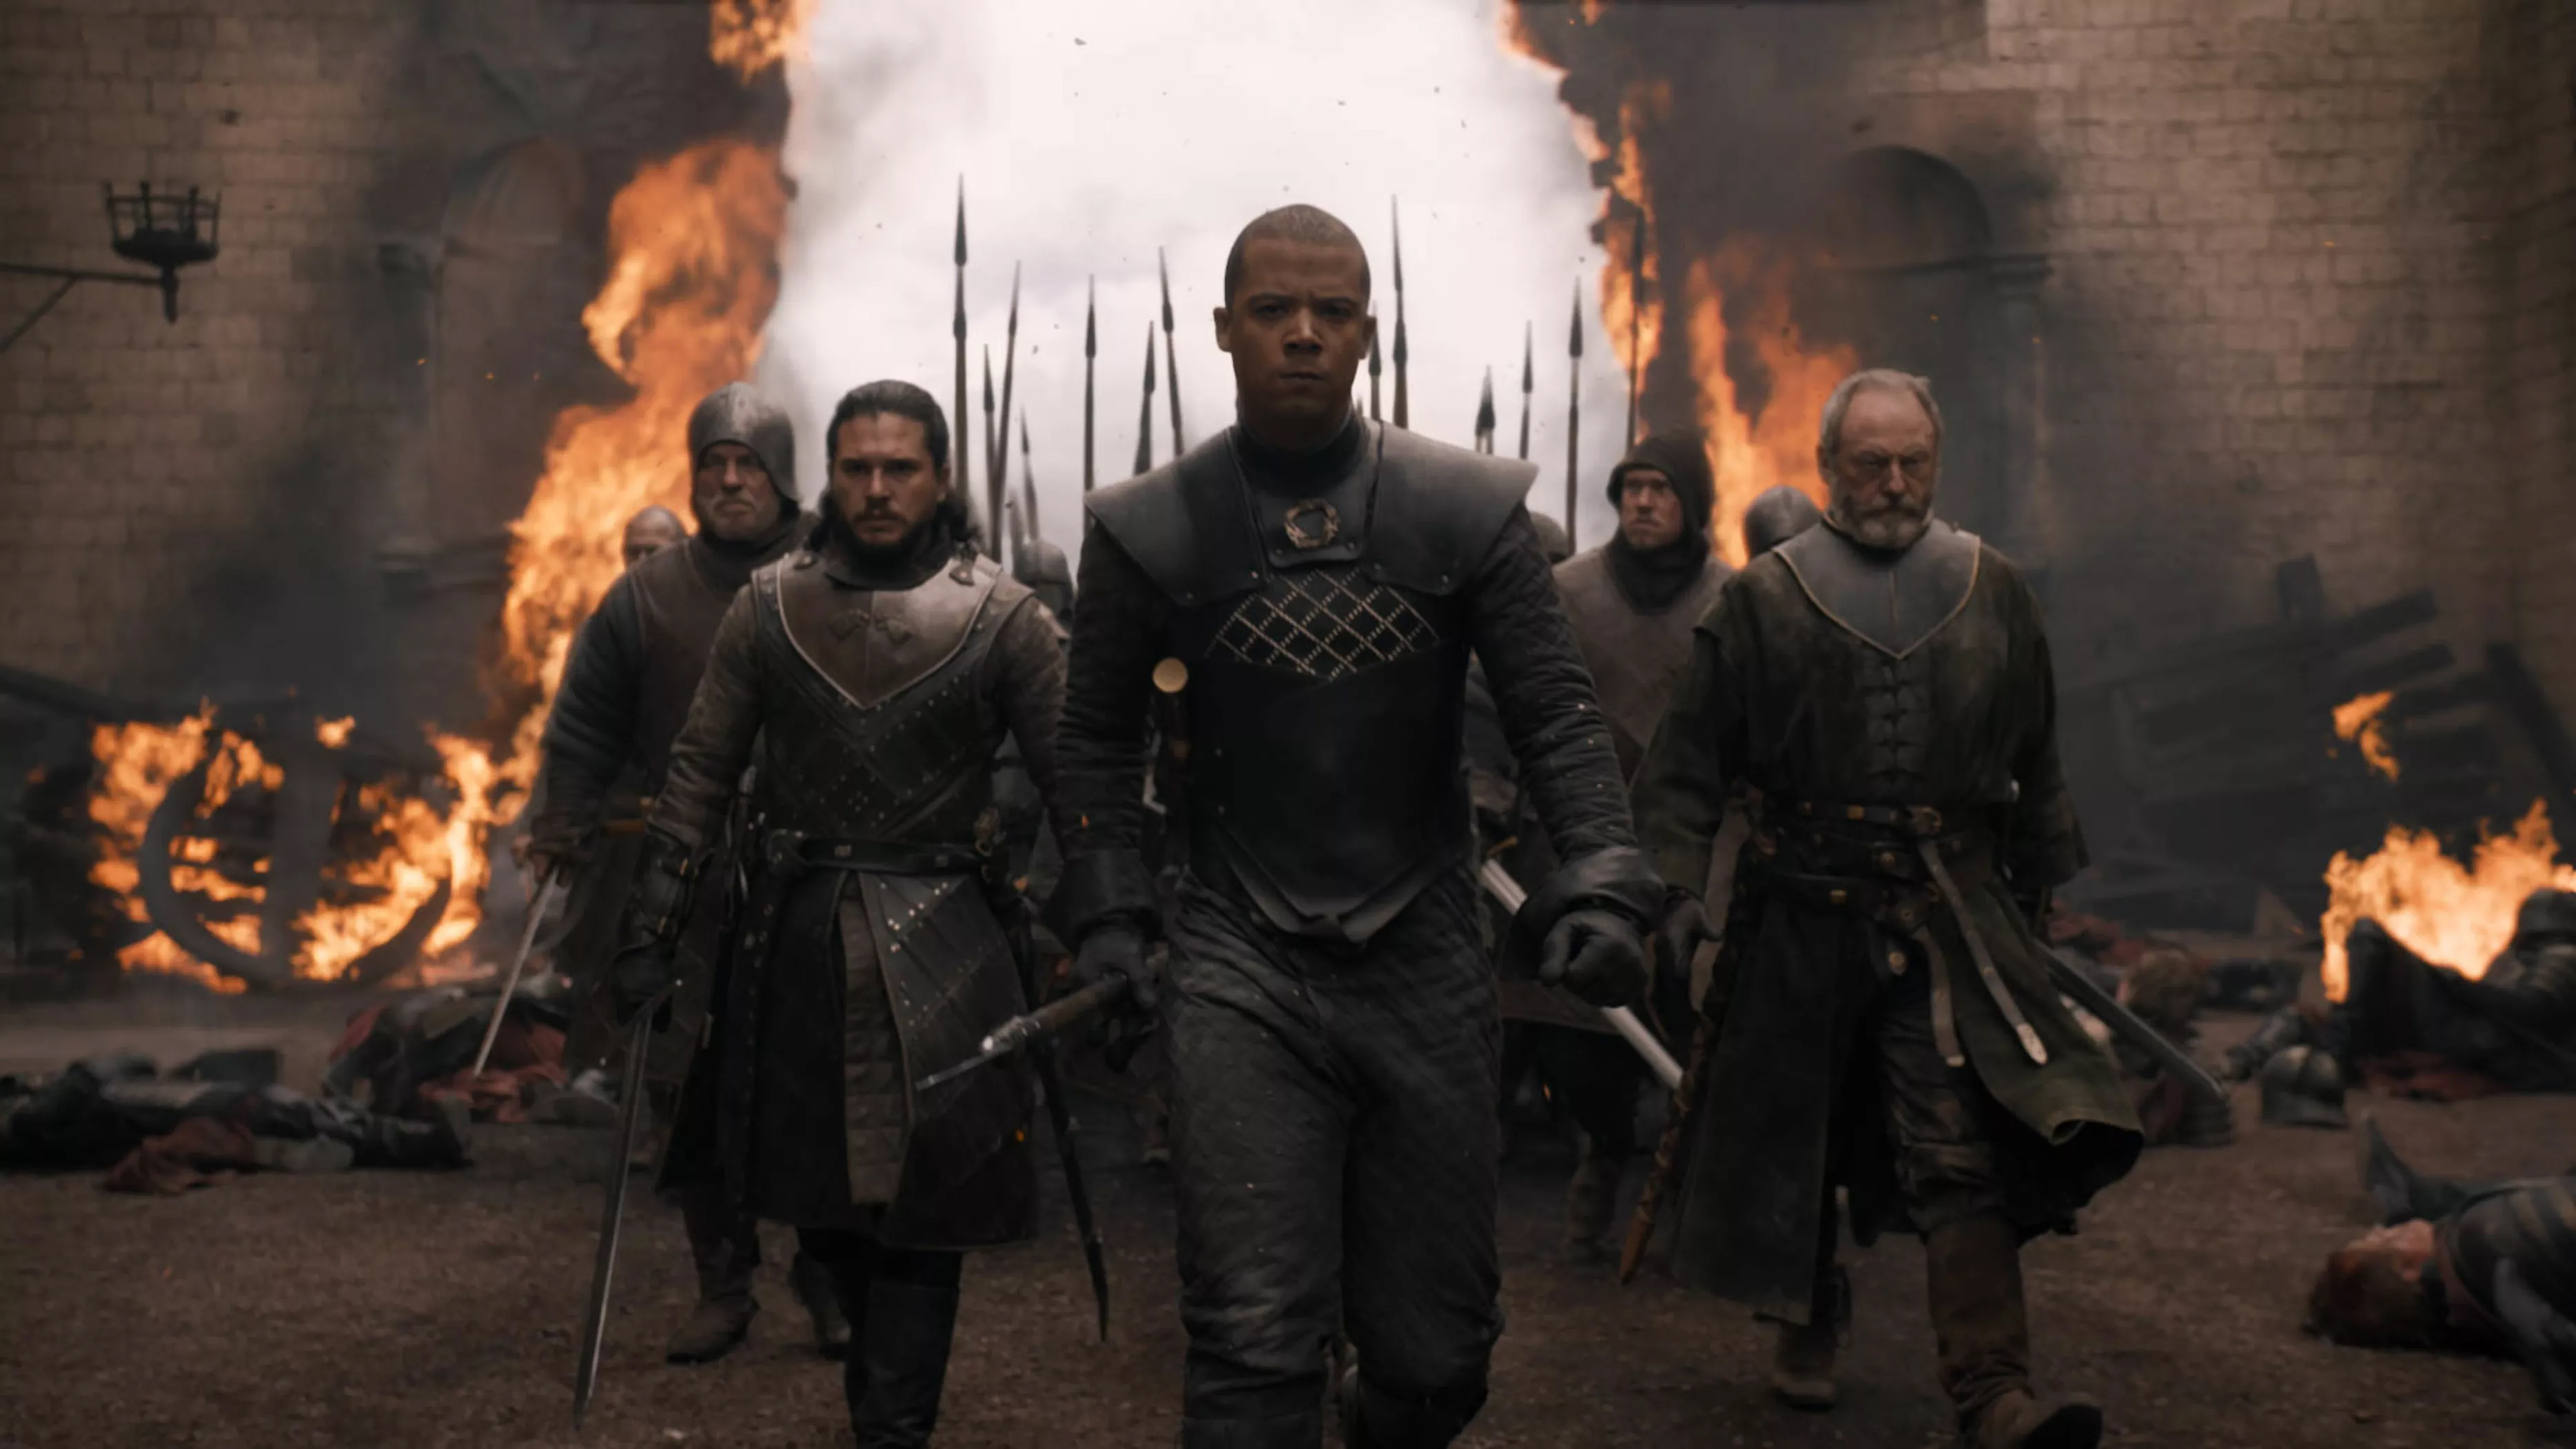 8x05 - The Bells - Jon, Grey Worm and Davos